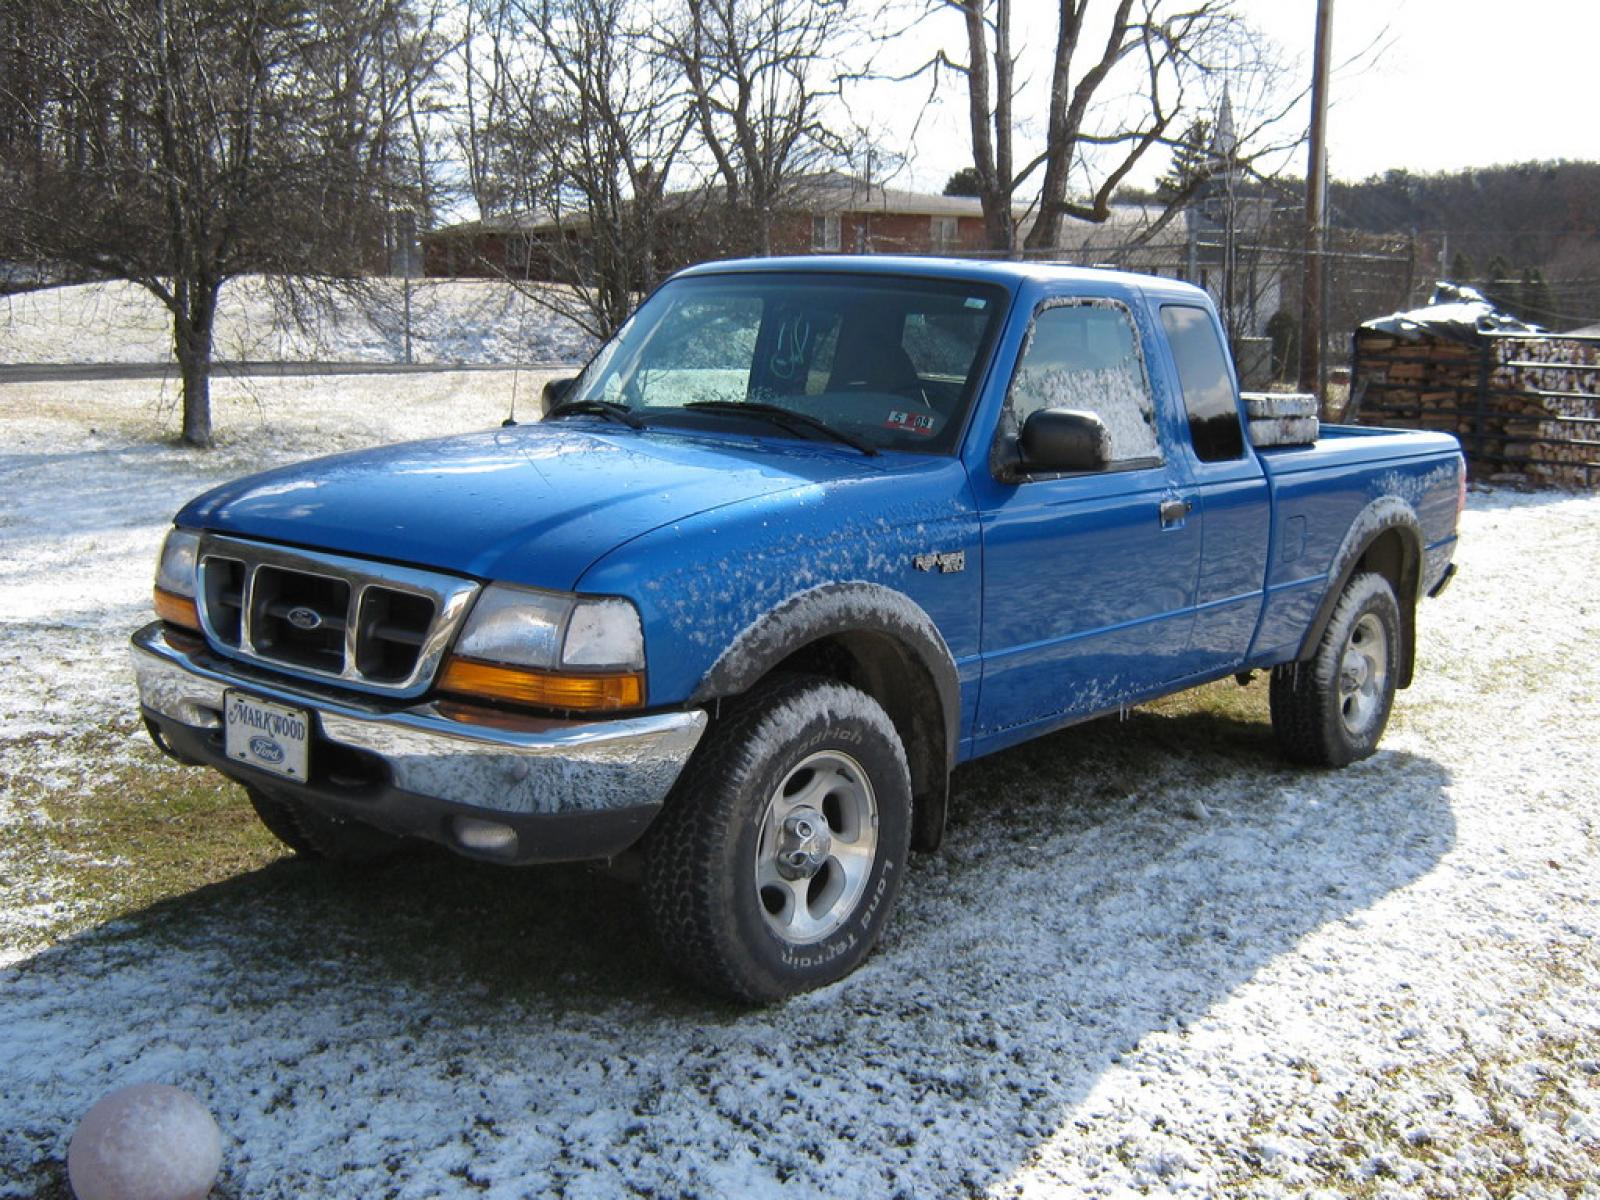 800 1024 1280 1600 origin 2000 ford ranger